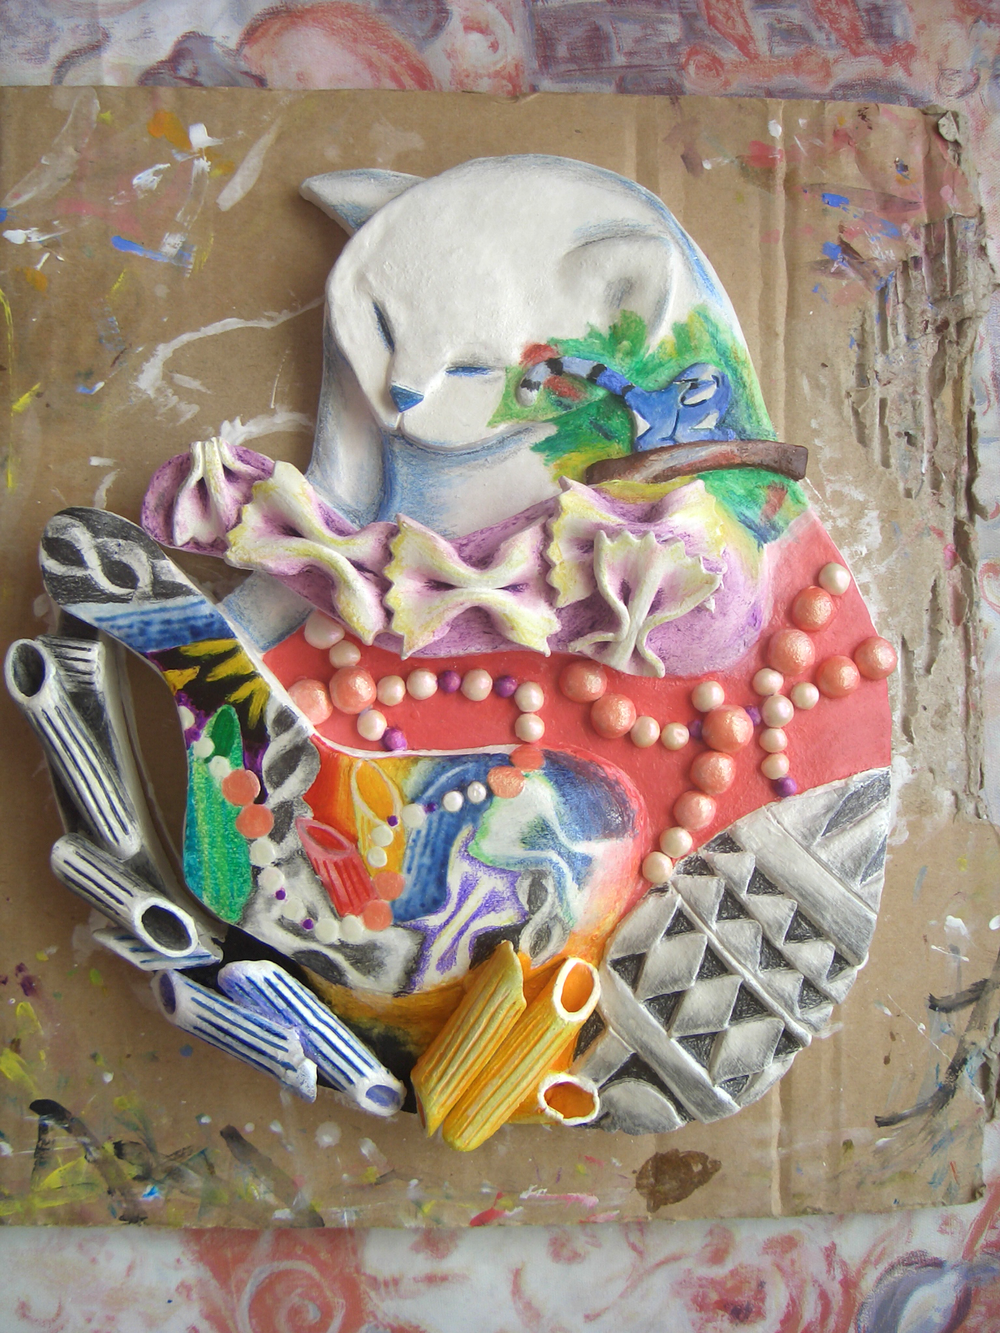 GSCE Art, clay after kiln and hand-painted